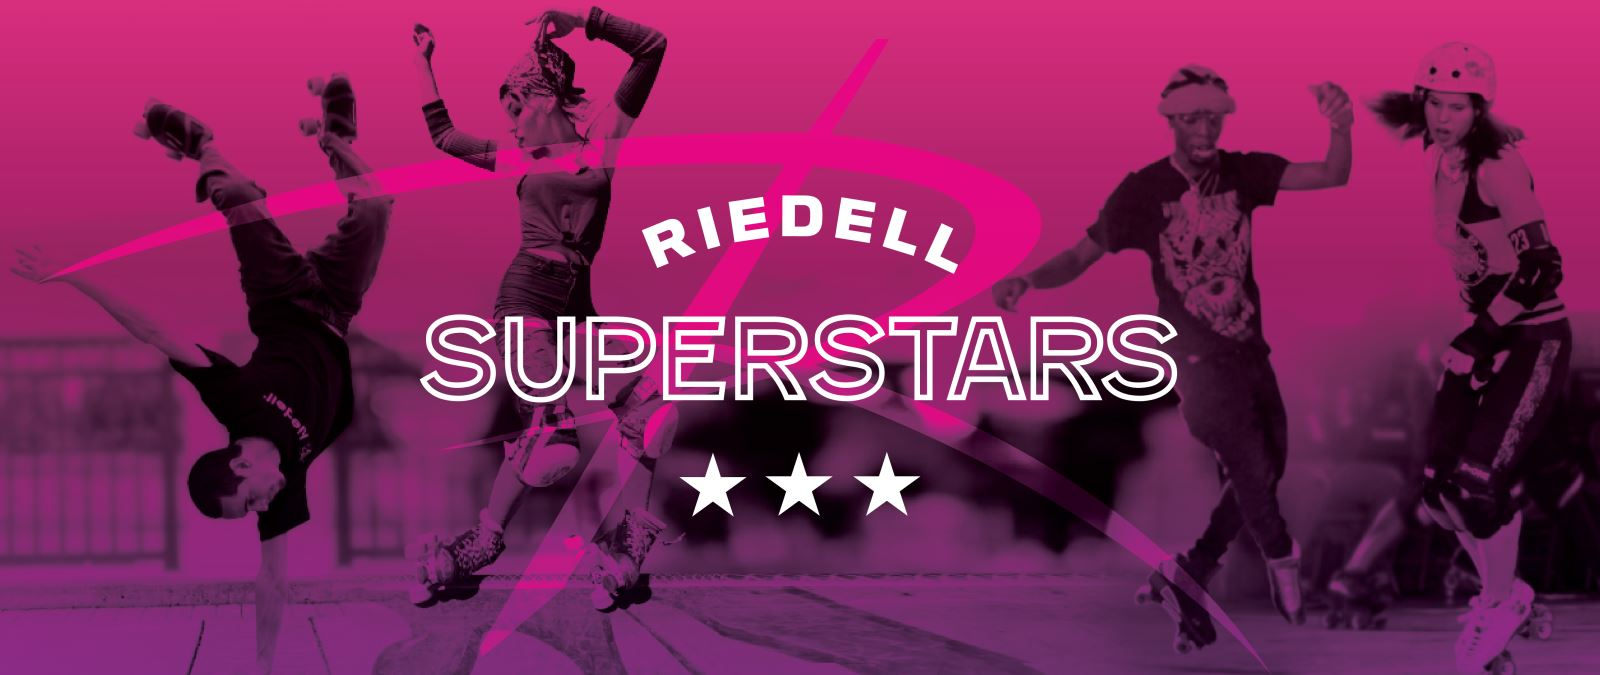 Riedell Superstars are some of the best roller skaters in the world at their skating specialty